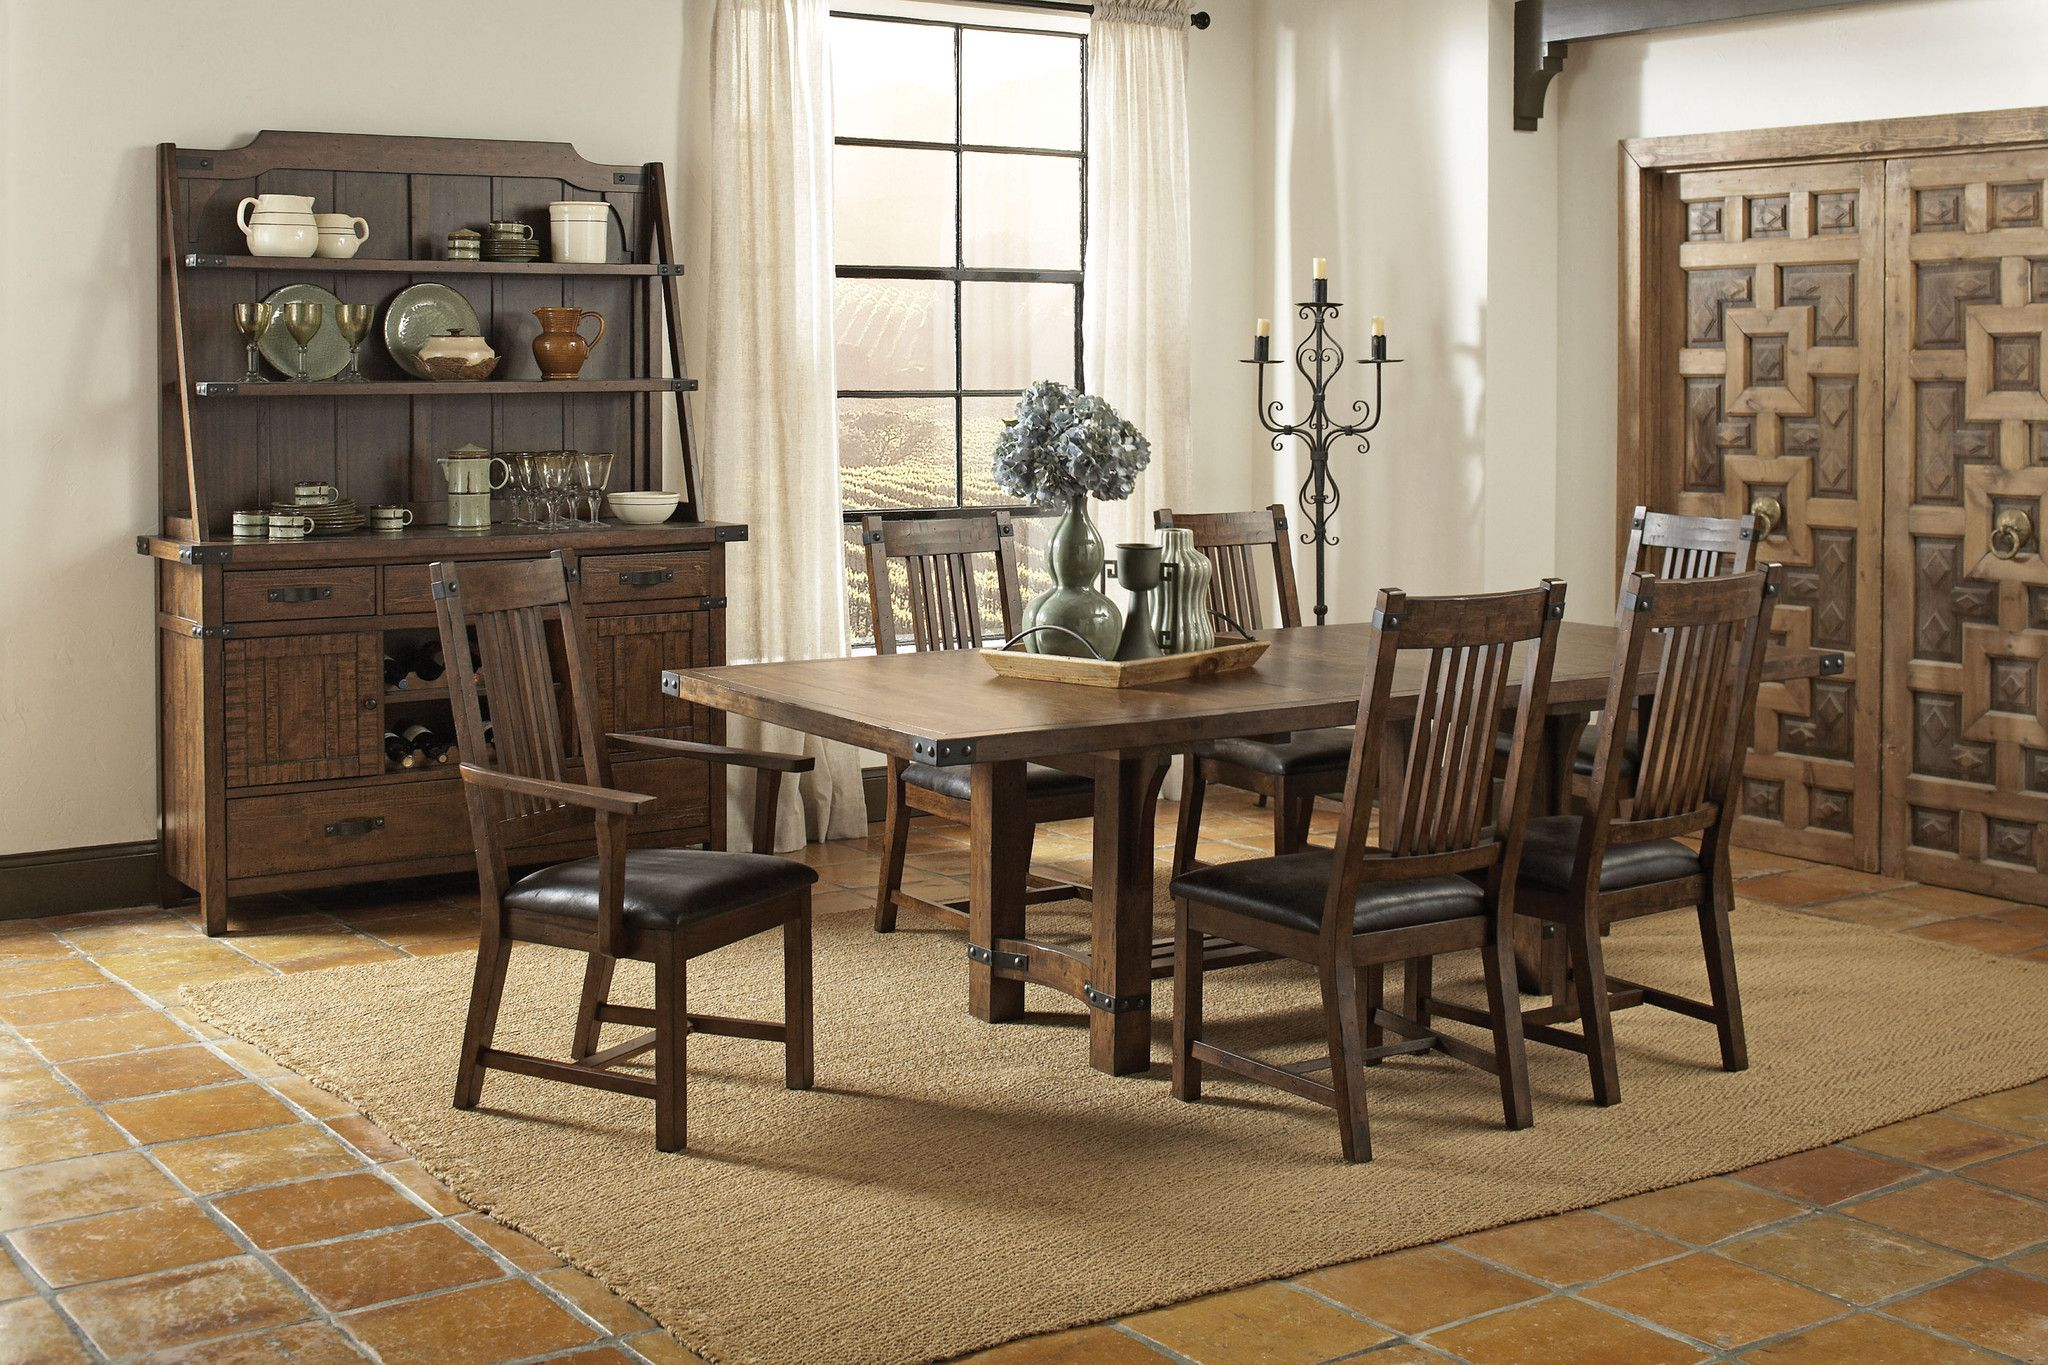 Server China Pbr Furniture In 2019 Dining Table In Kitchen